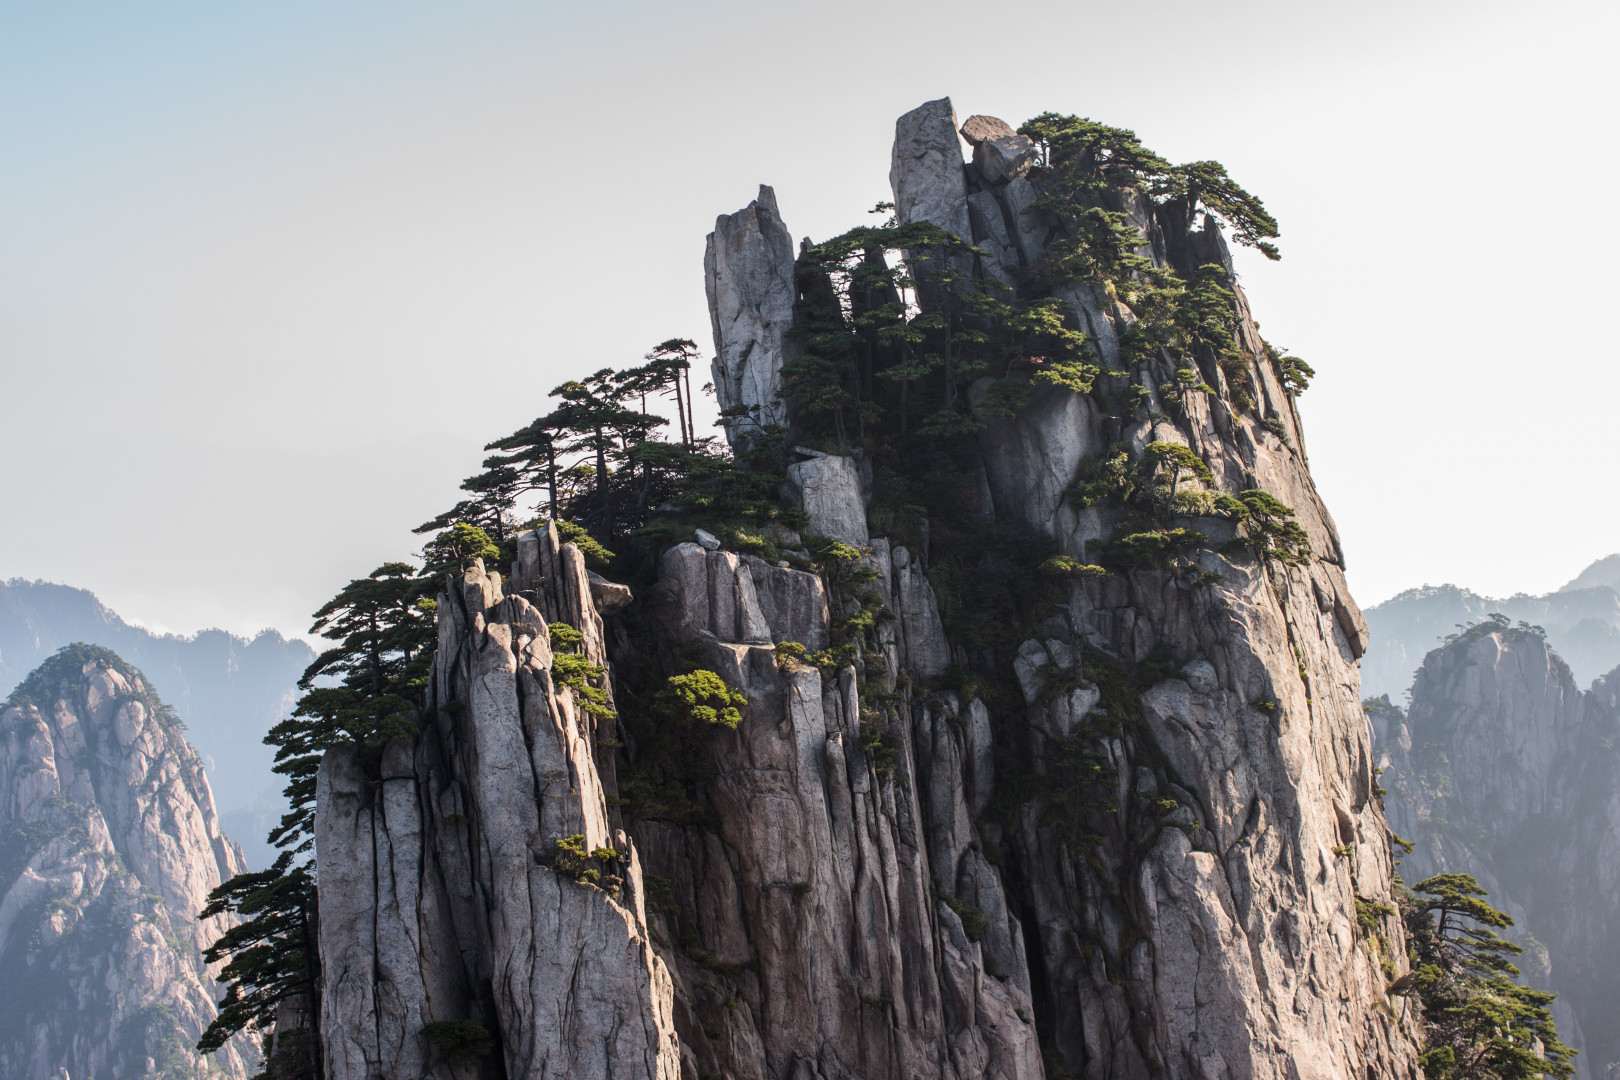 Les monts HuangShan, Chine